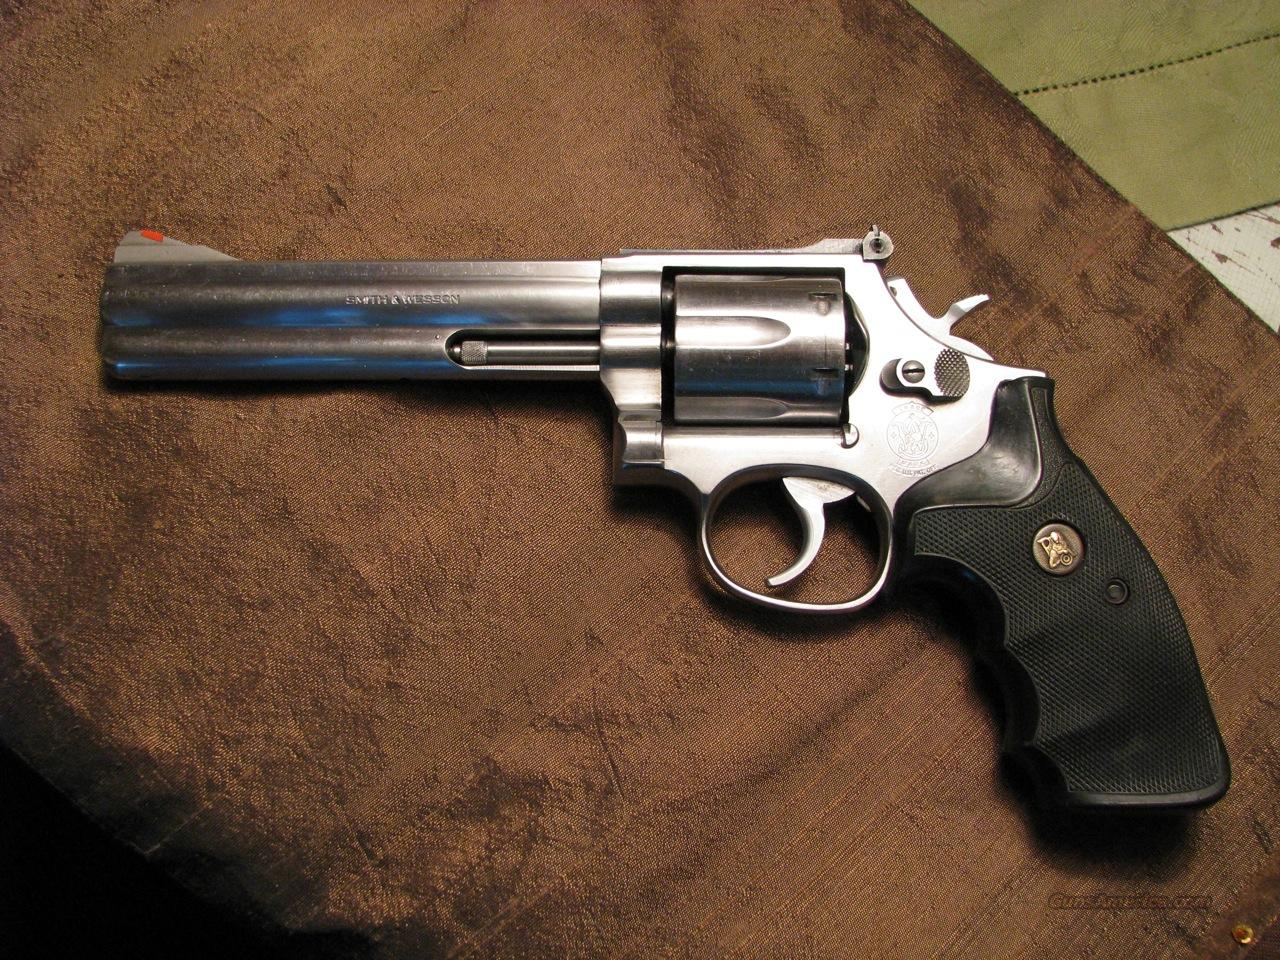 S&W Model 686 6-inch stainless .357 Mag.  Guns > Pistols > Smith & Wesson Revolvers > Full Frame Revolver